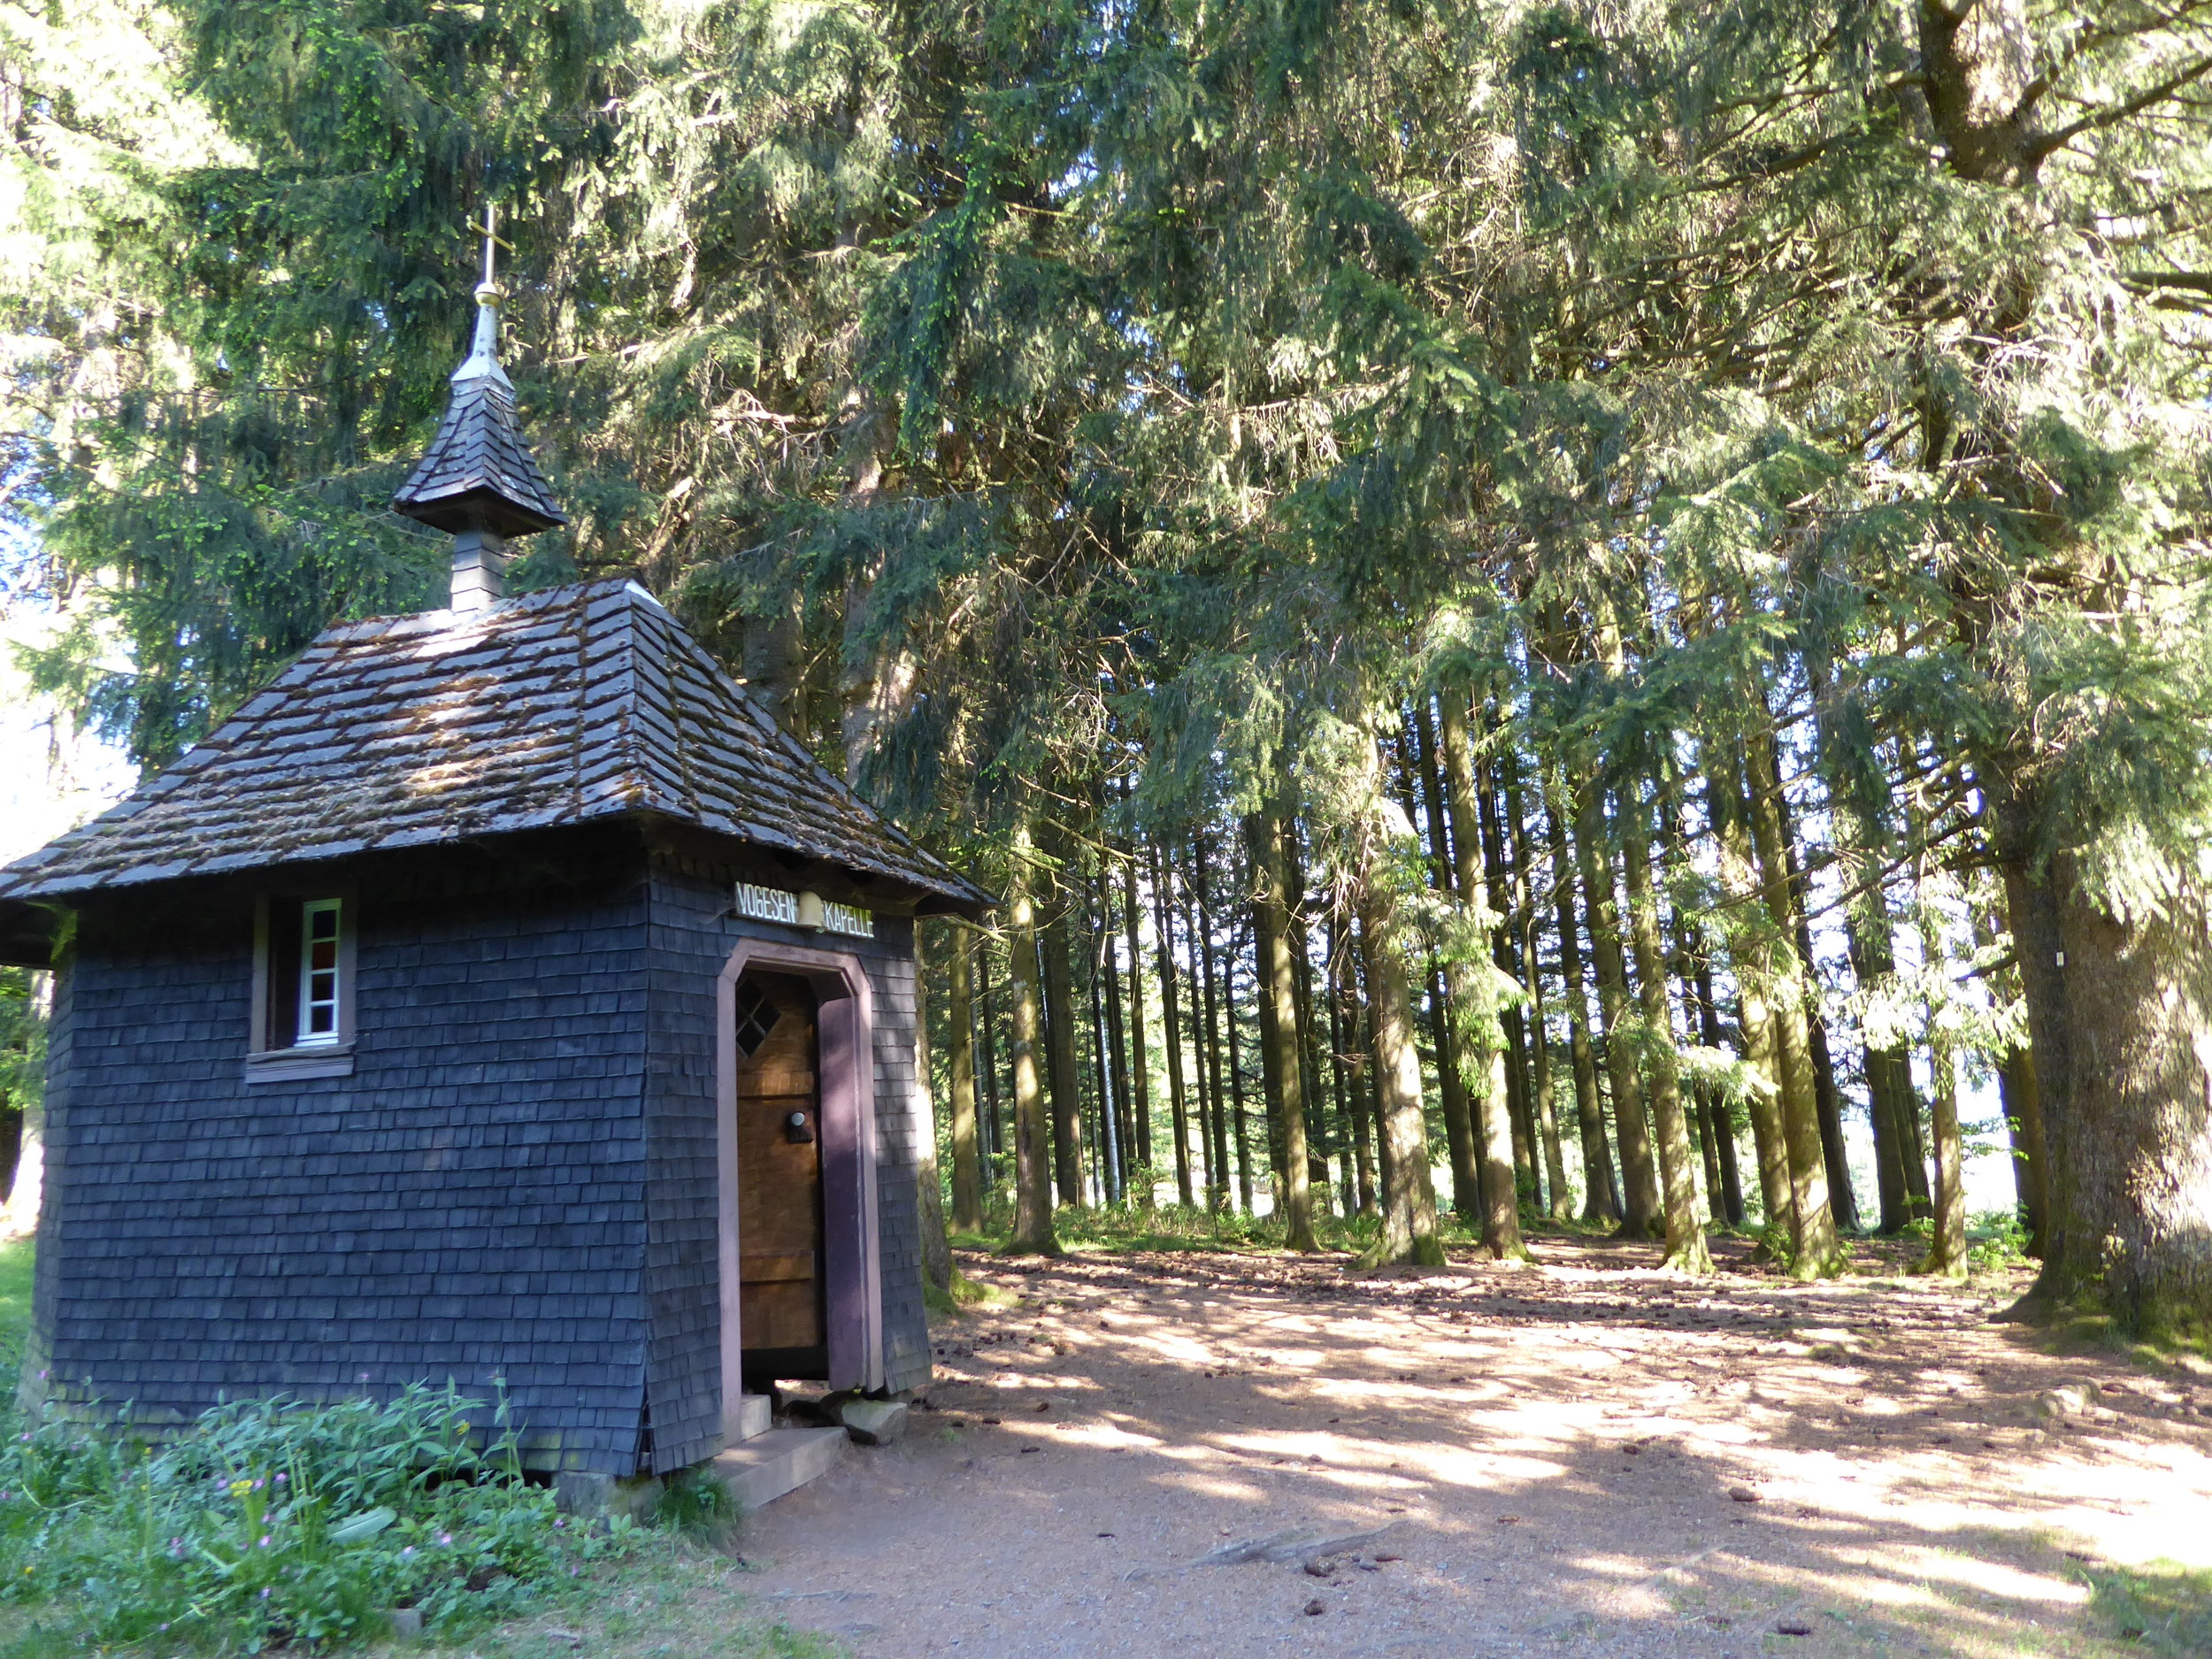 A walk through the Black Forest, which isn't particularly dark. The Vogensen Kapelle was built by a World War I soldier who made a pact with God to build a chapel in the forest by his hometown if he survived the war.